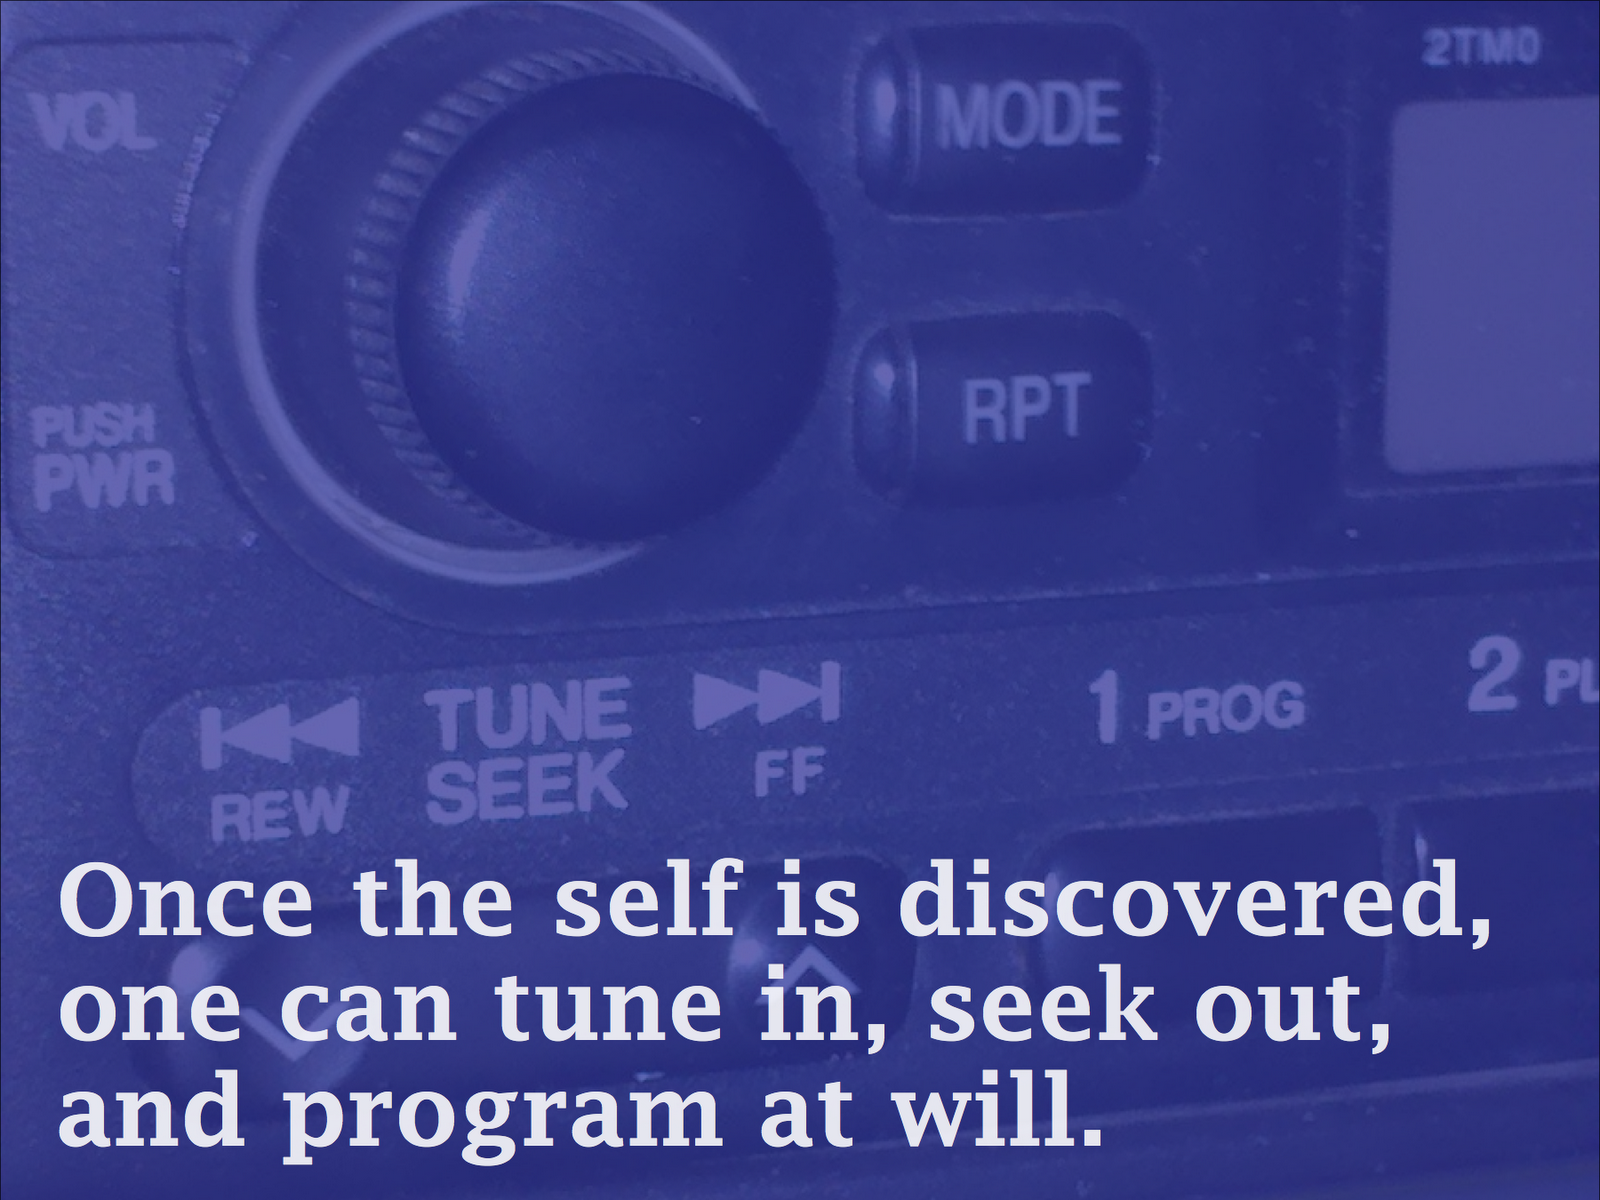 JOURNEY OF SELF DISCOVERY Quotes Like Success